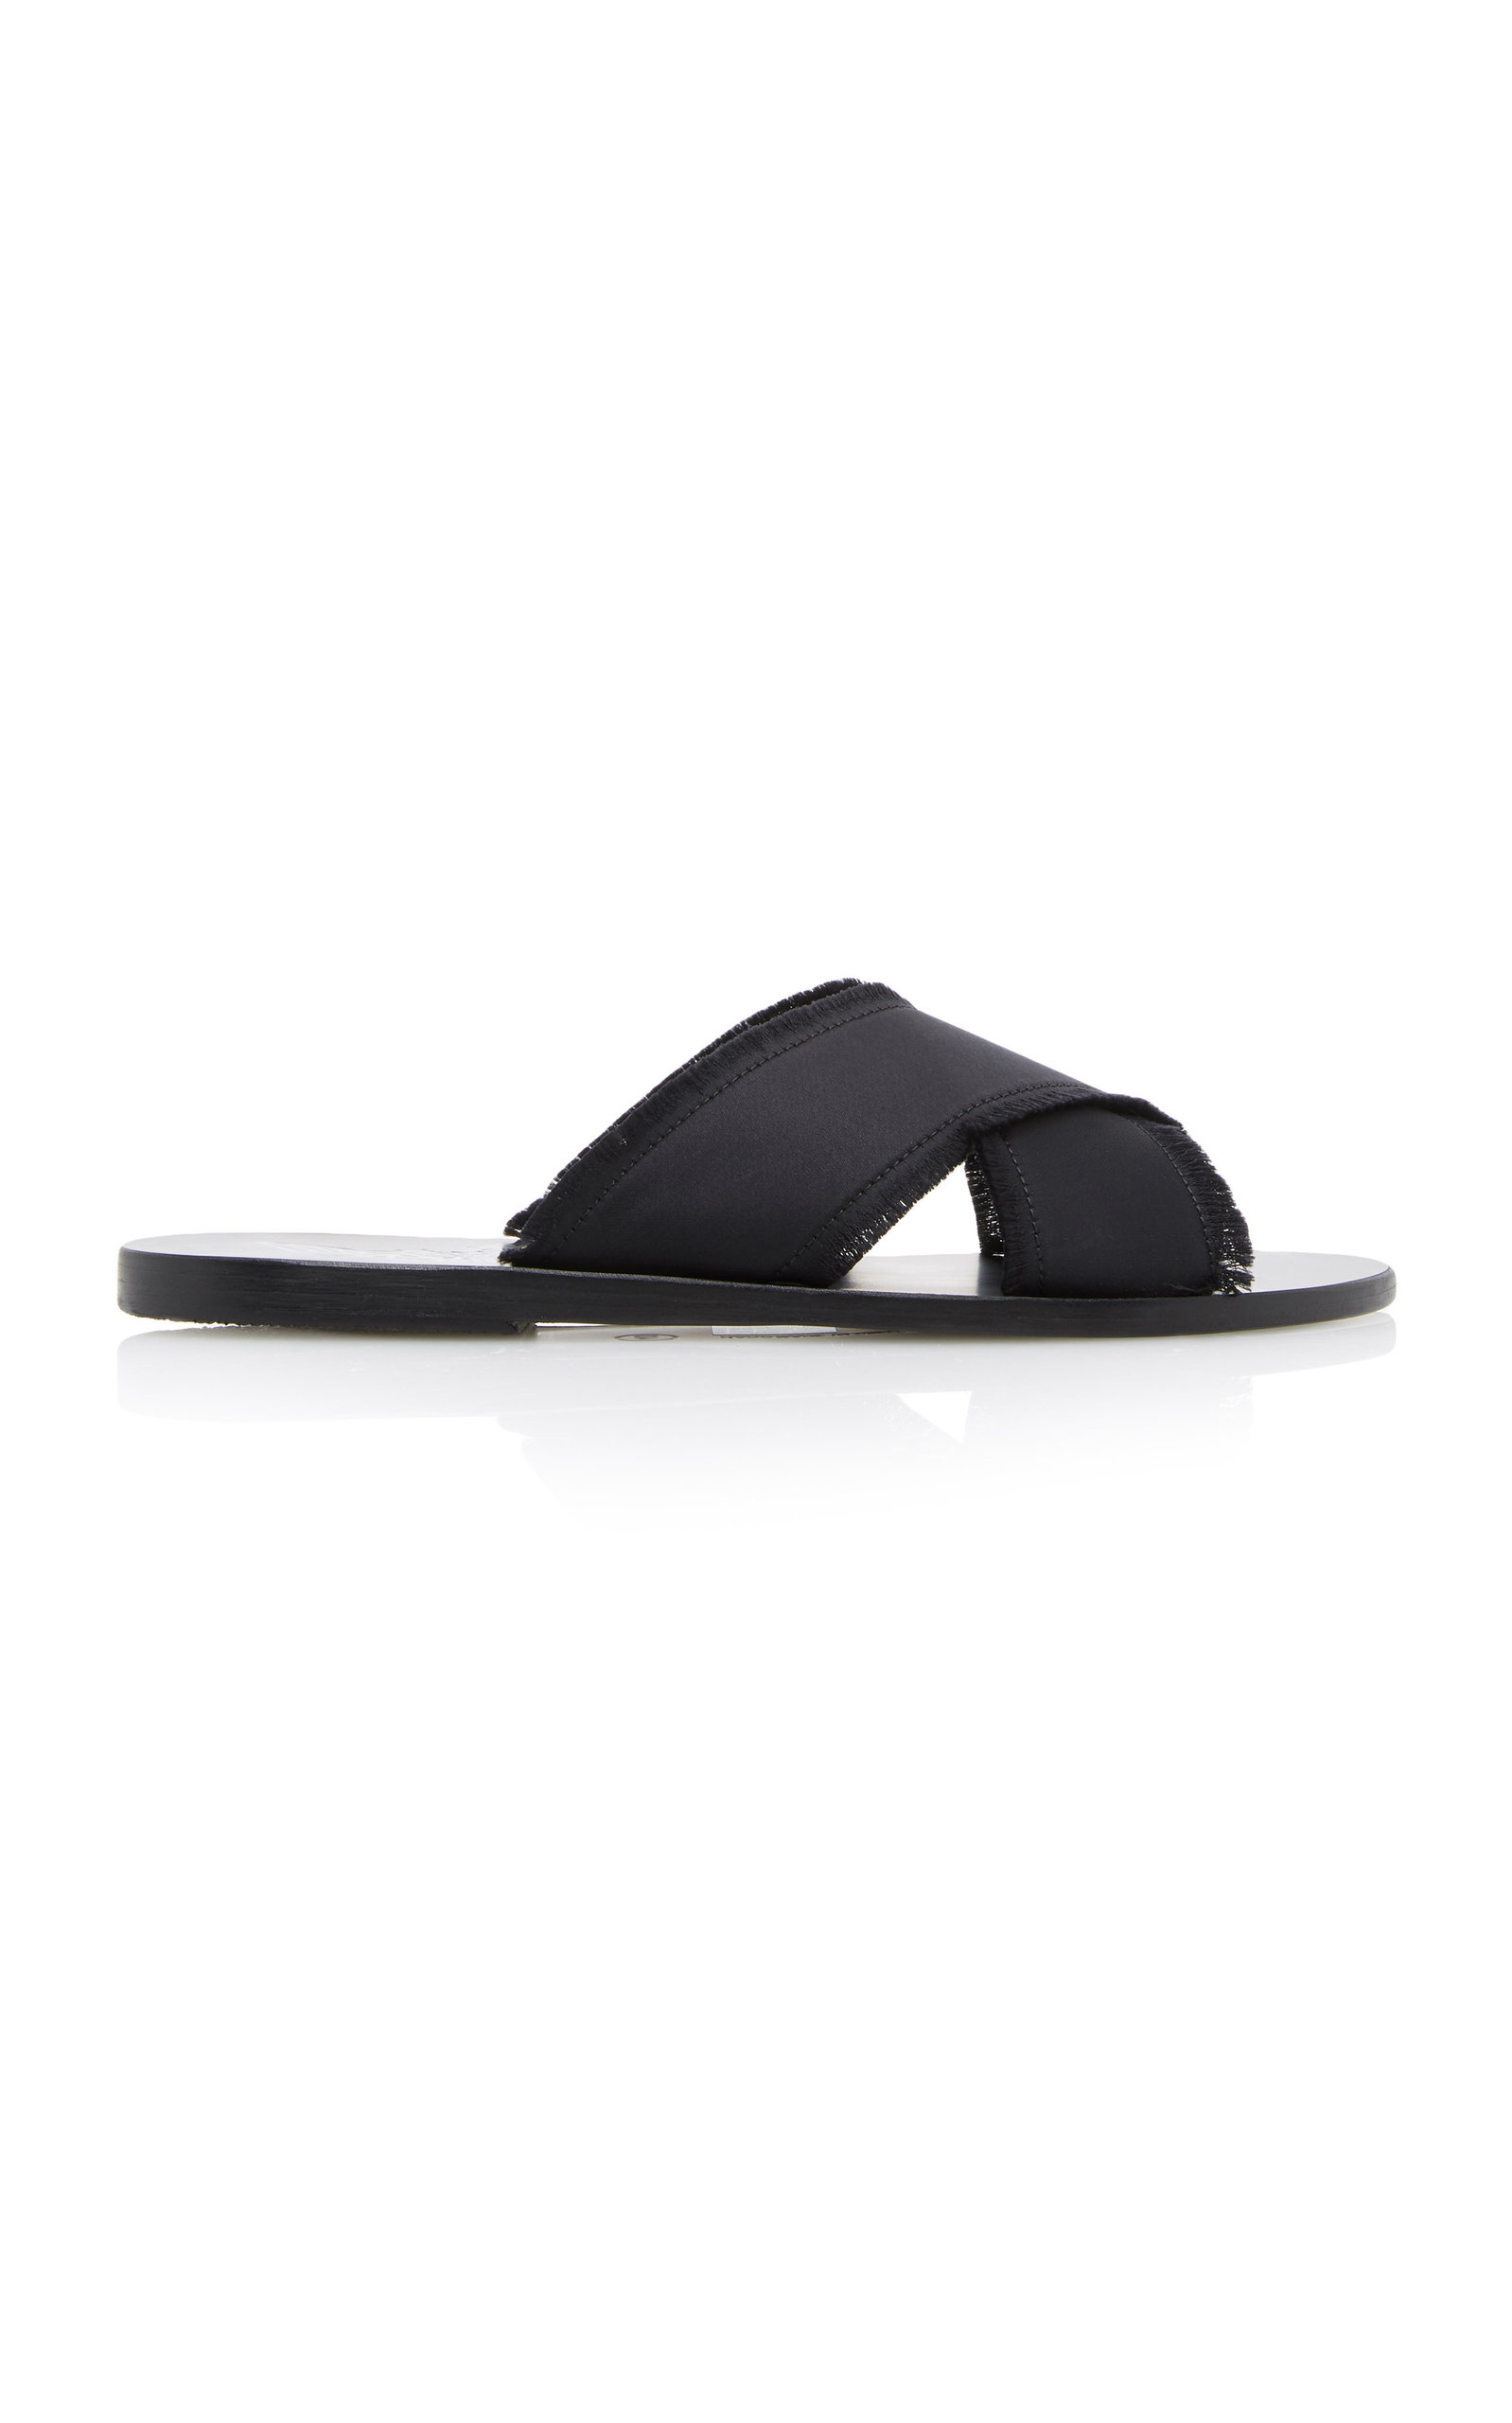 For Nice Sale Online Big Sale Ancient Greek Sandals Thais Satin Sliders Cheap Sale Websites Marketable Cheap Online Discount Price 69x0al